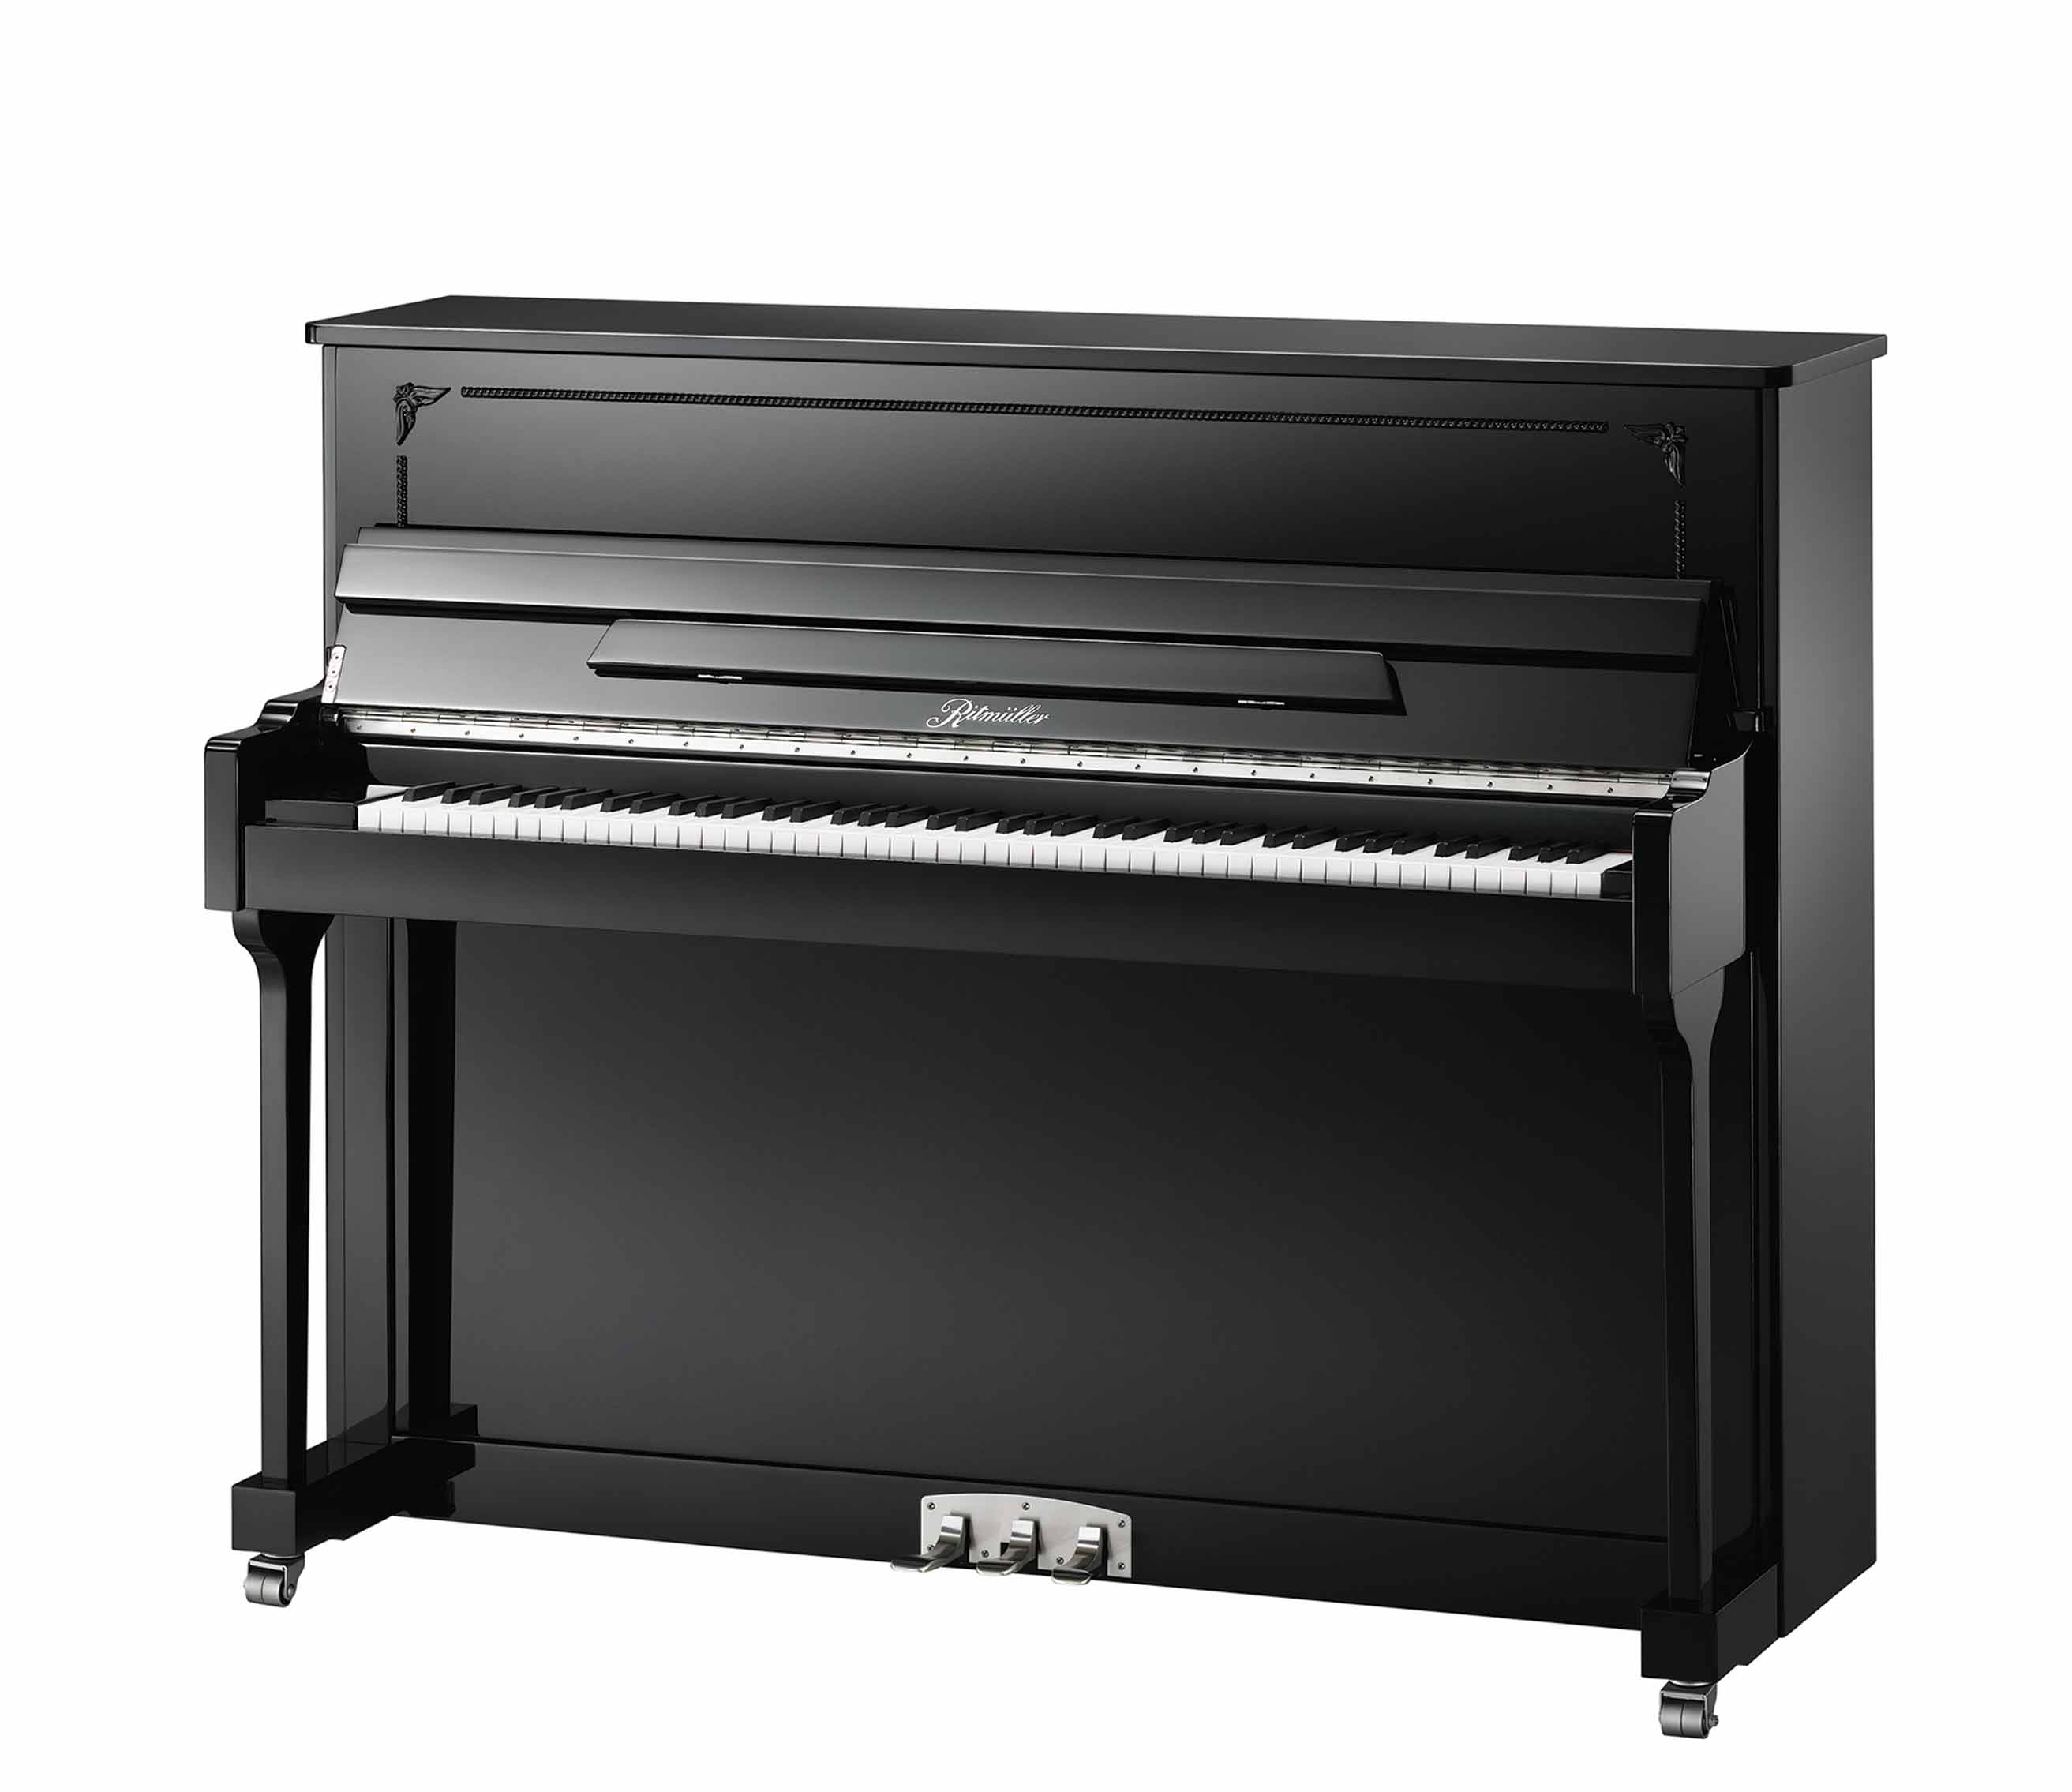 Ritmüller R1 Designer Case studio upright piano in Ebony Polish finish